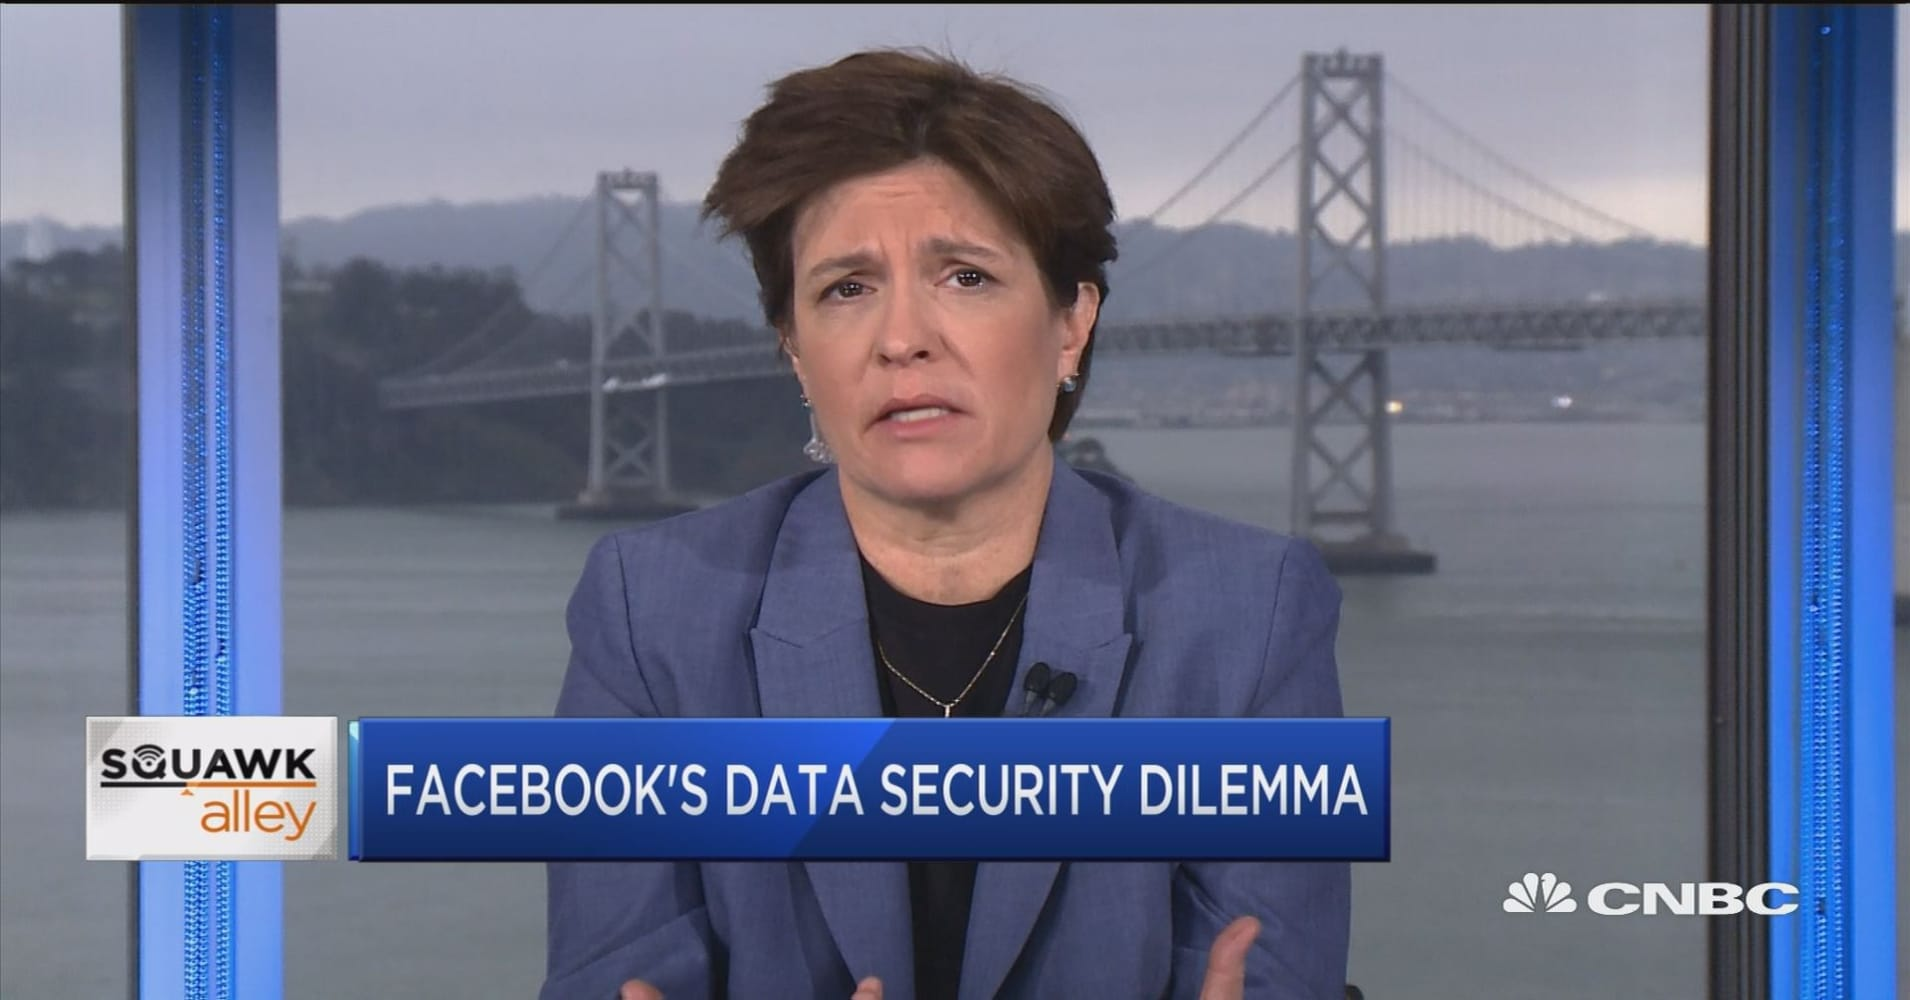 Kara Swisher on the new Facebook data security dilemma